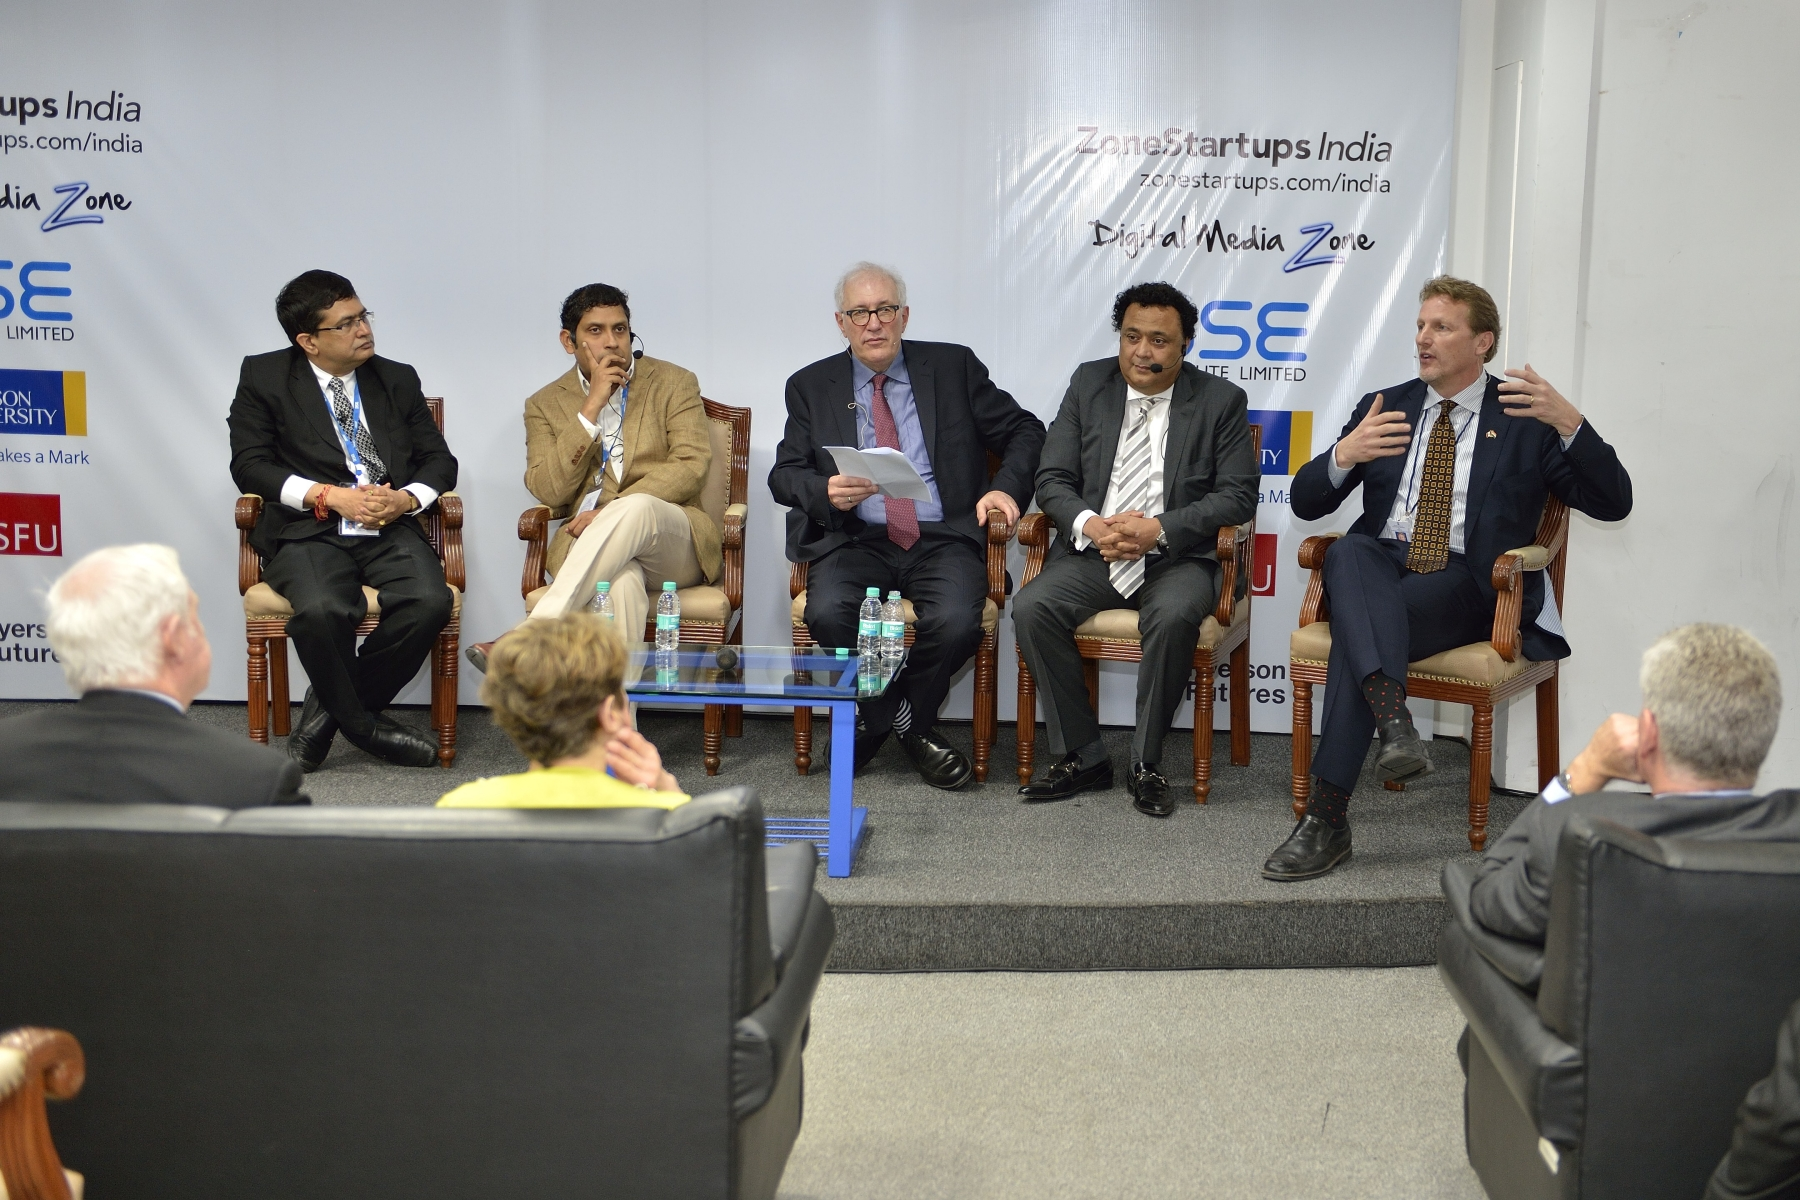 The Governor General and Sheldon Levy (centre), President and Vice-Chancellor of Ryerson University, then participated in a discussion on how to build an innovation ecosystem in India using the Canadian experience. Canadian delegate Peter van der Velden, Managing General Partner of Lumira Capital Investment Management and President of Canada's Venture Capital and Private Equity Association (right), participated in the discussion.